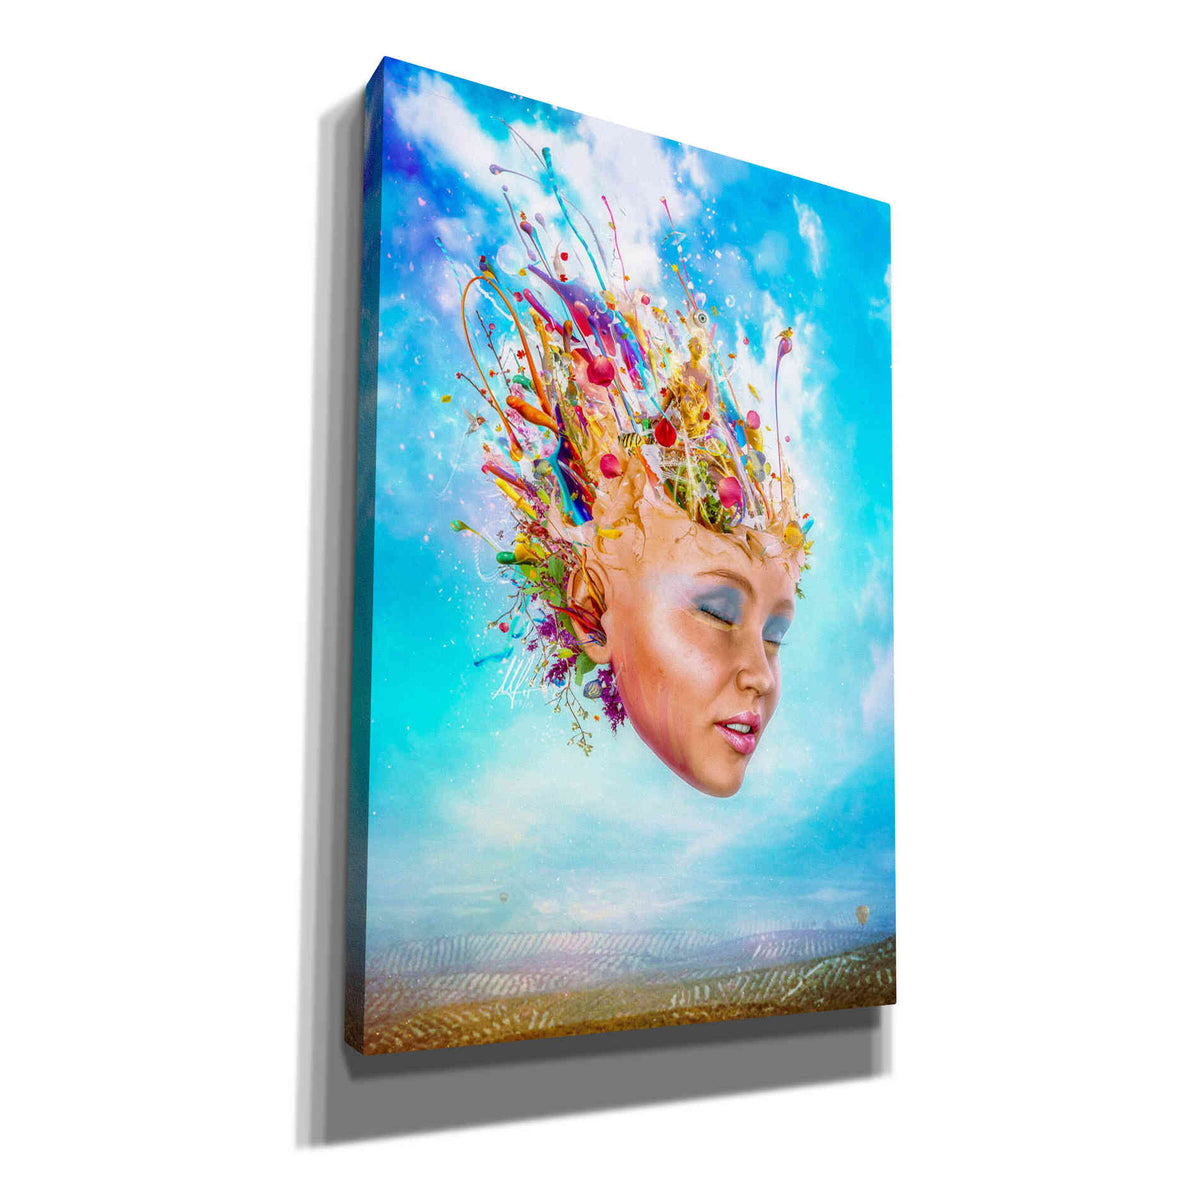 Cortesi Home 'Muse' by Mario Sanchez Nevado, Canvas Wall Art,Size A Portrait